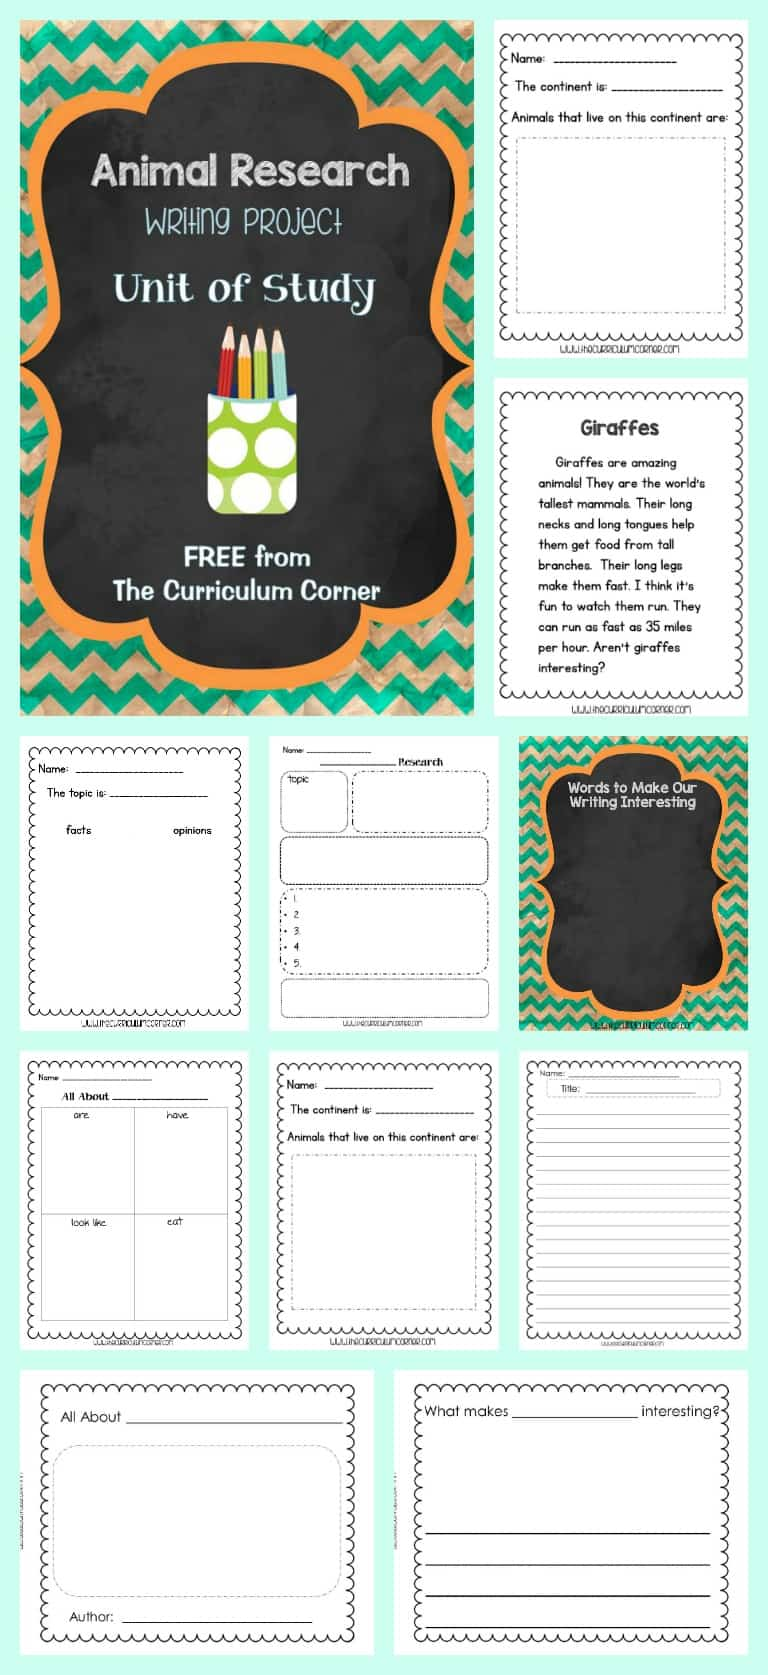 This animal research writing unit of study will help you build excitement about writing informational text in your classroom.